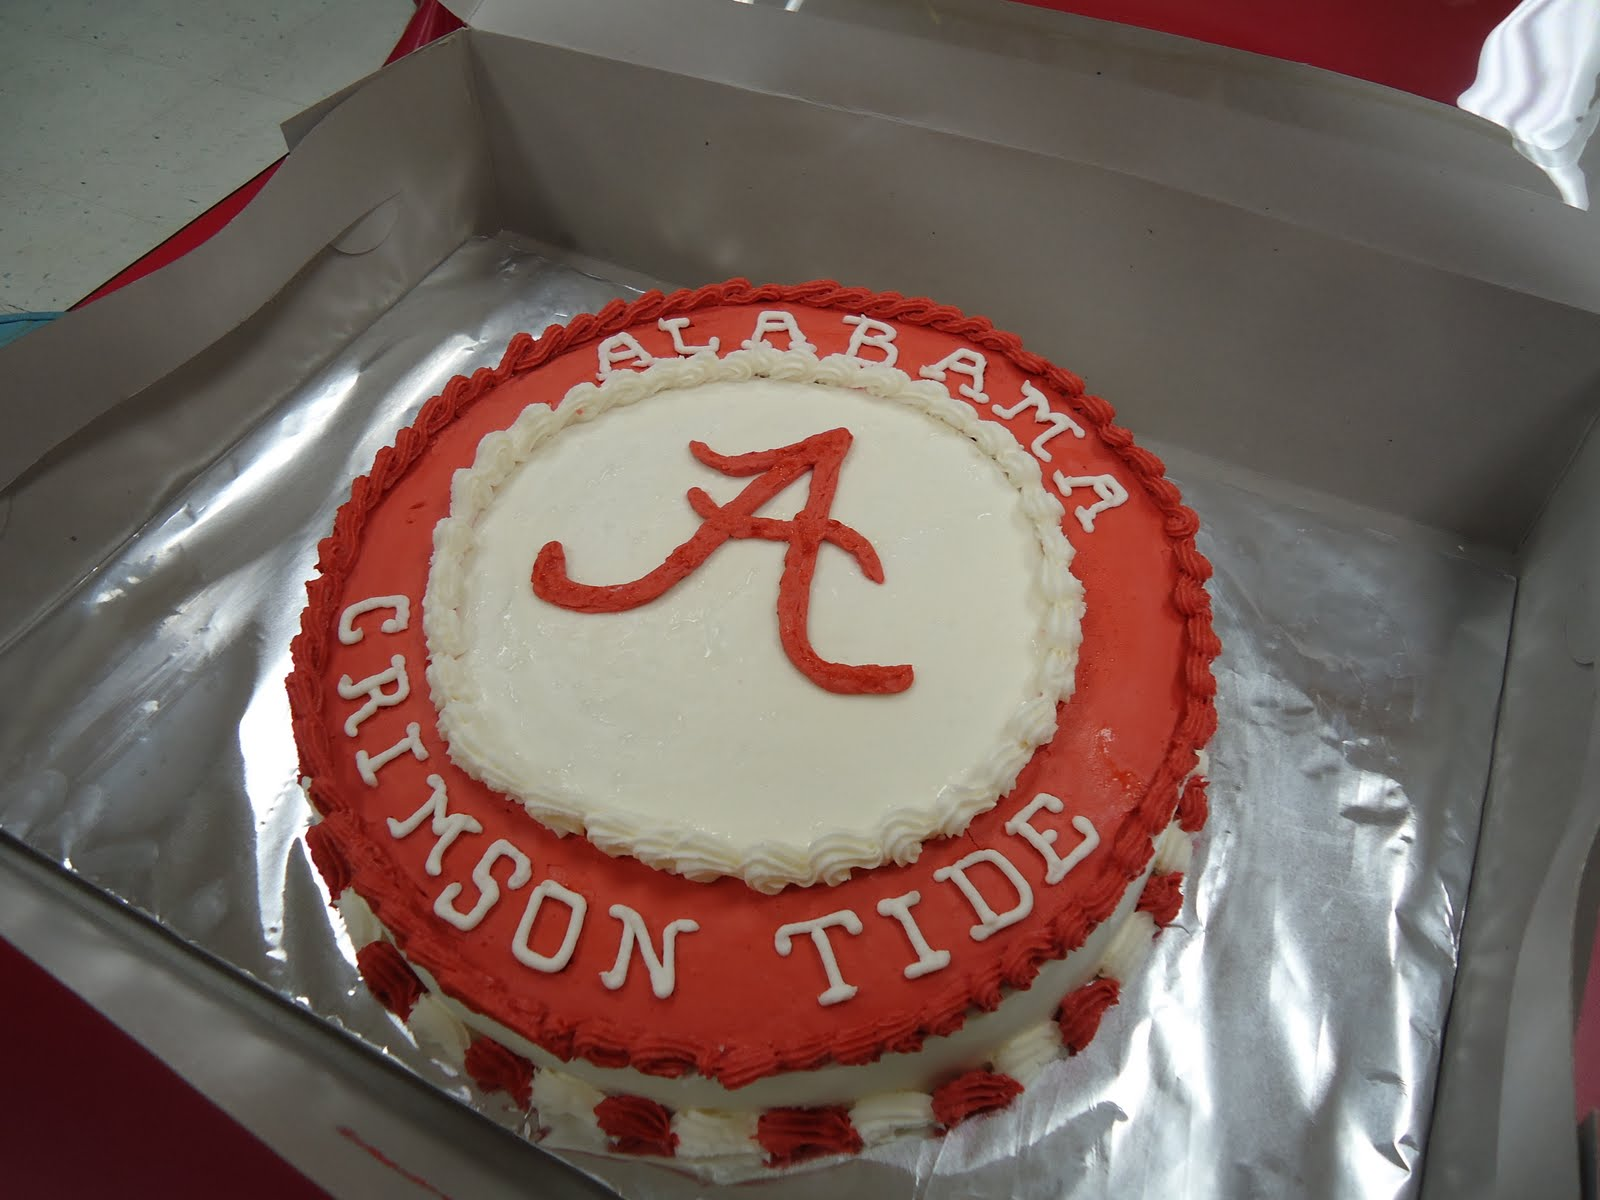 College Football on ESPN - Official Site Alabama football cake images